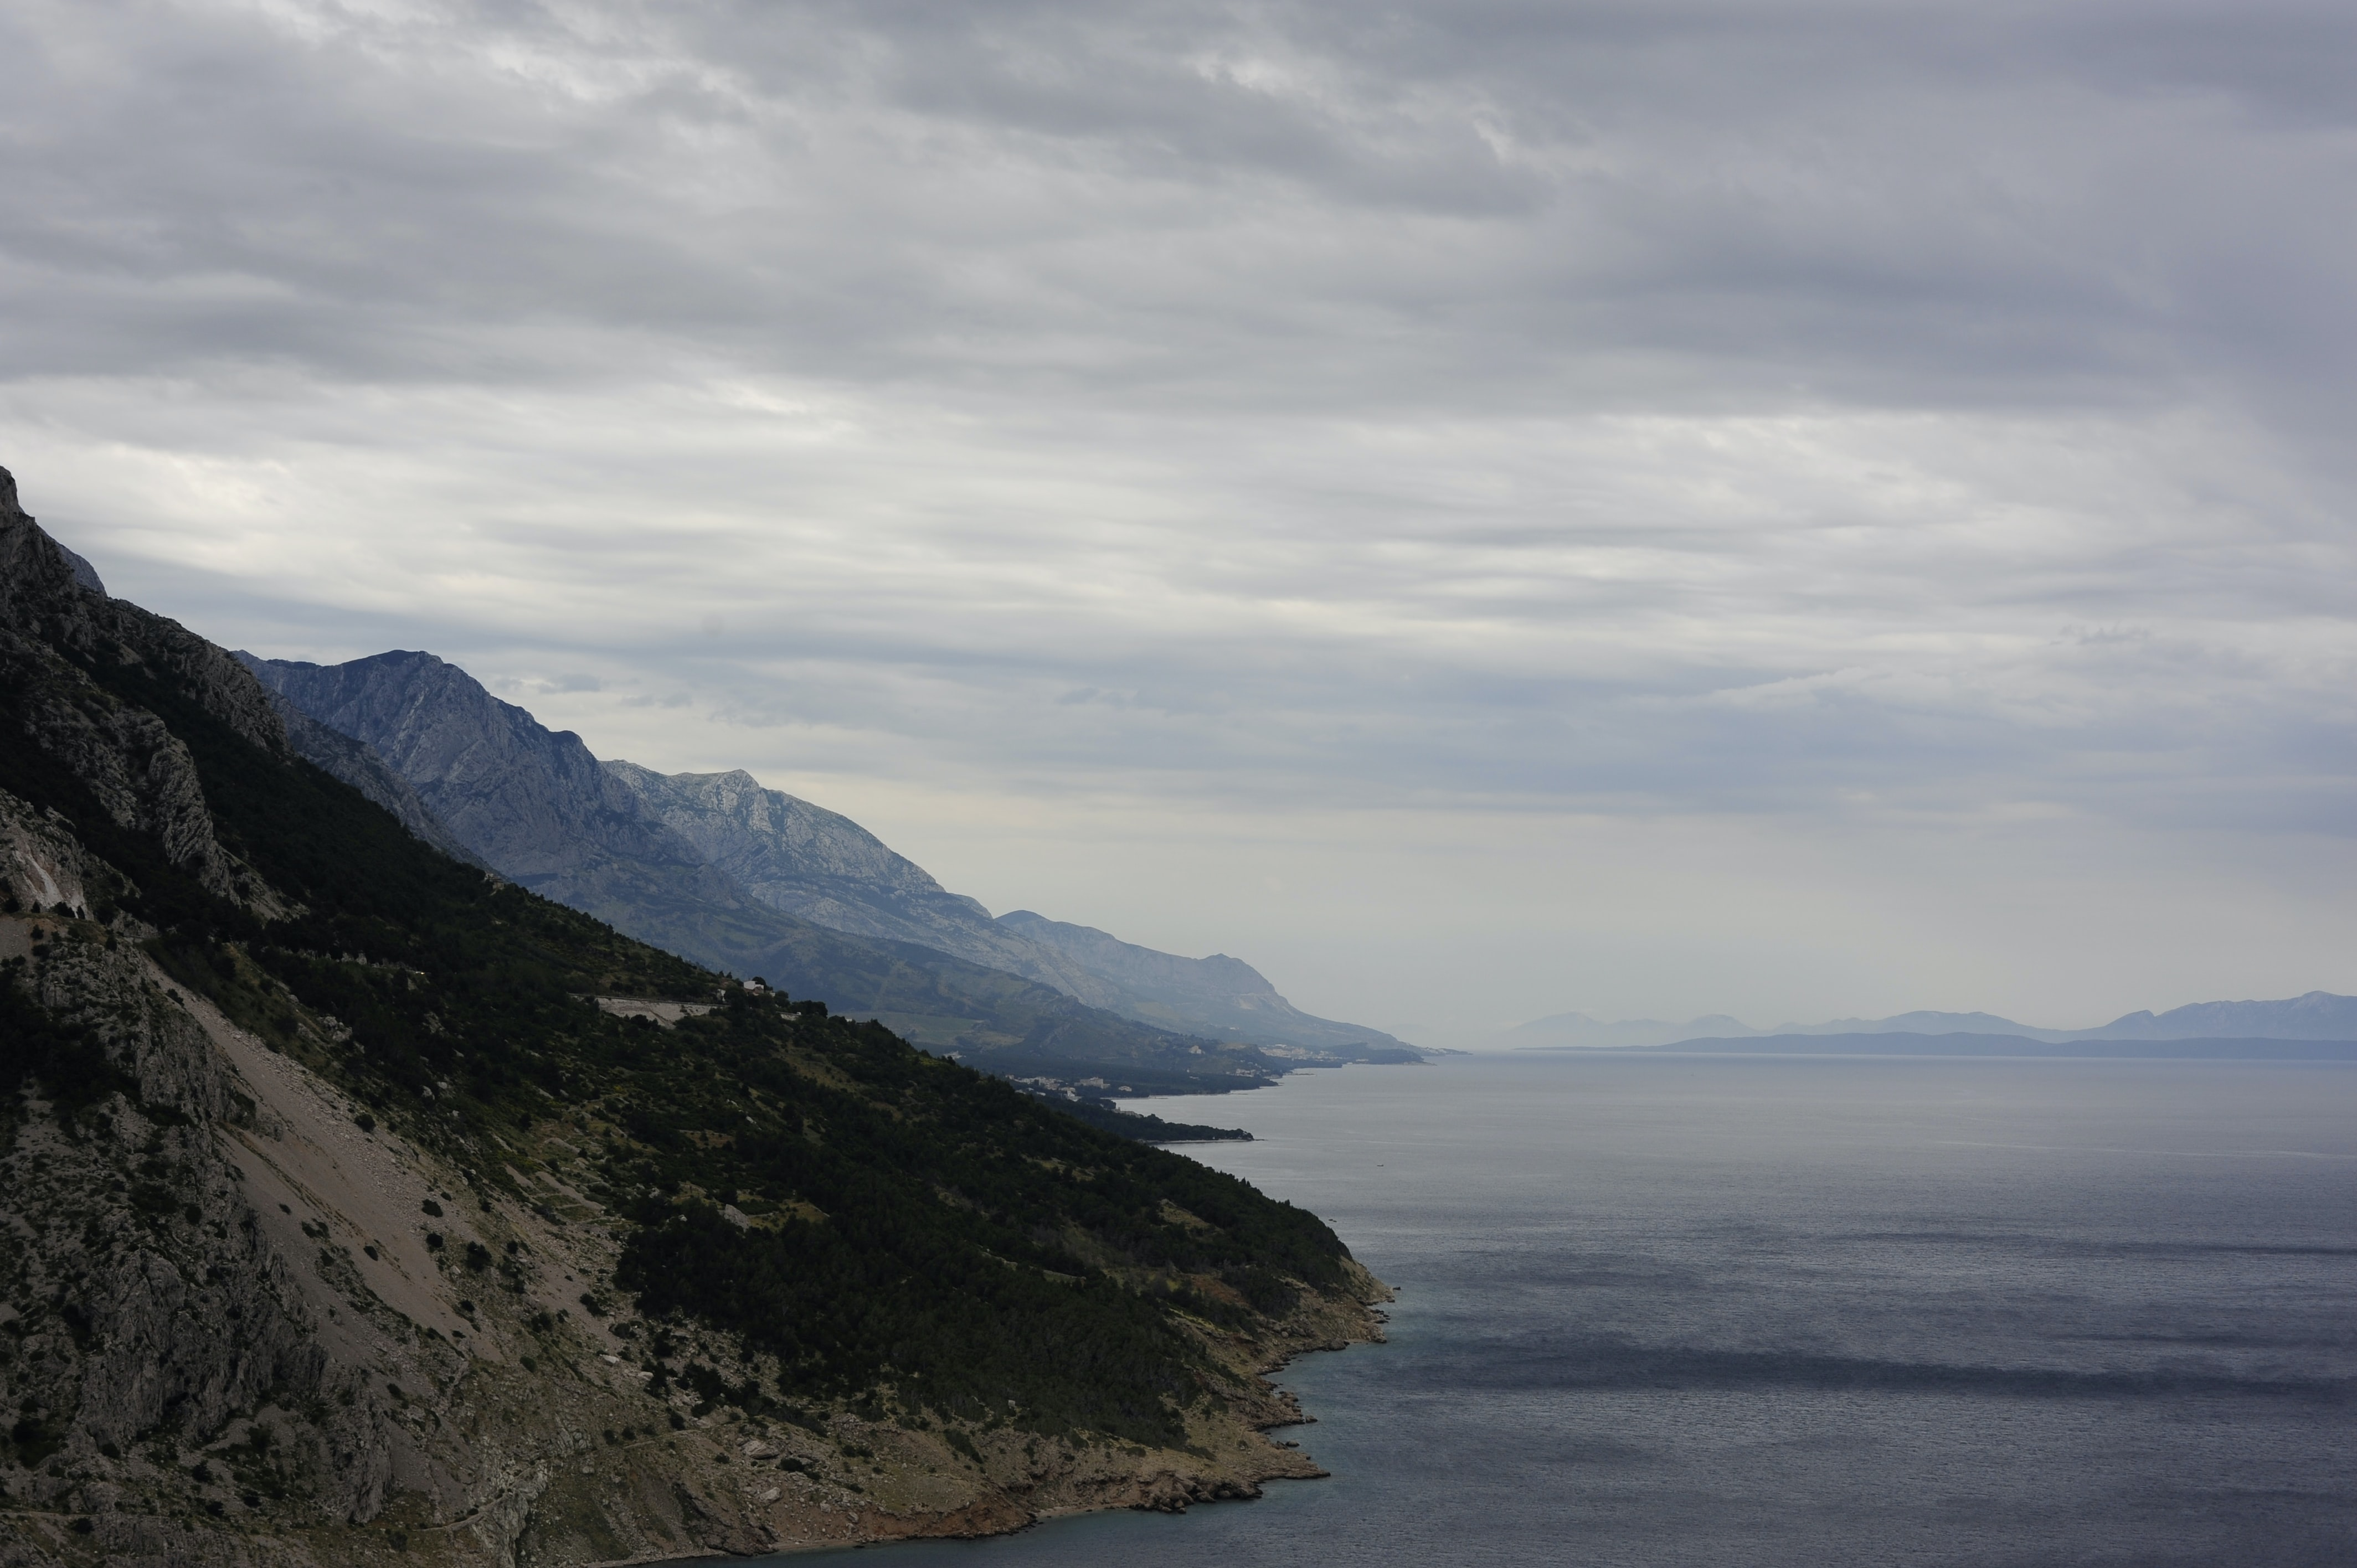 An empty mountainous coast under thick clouds